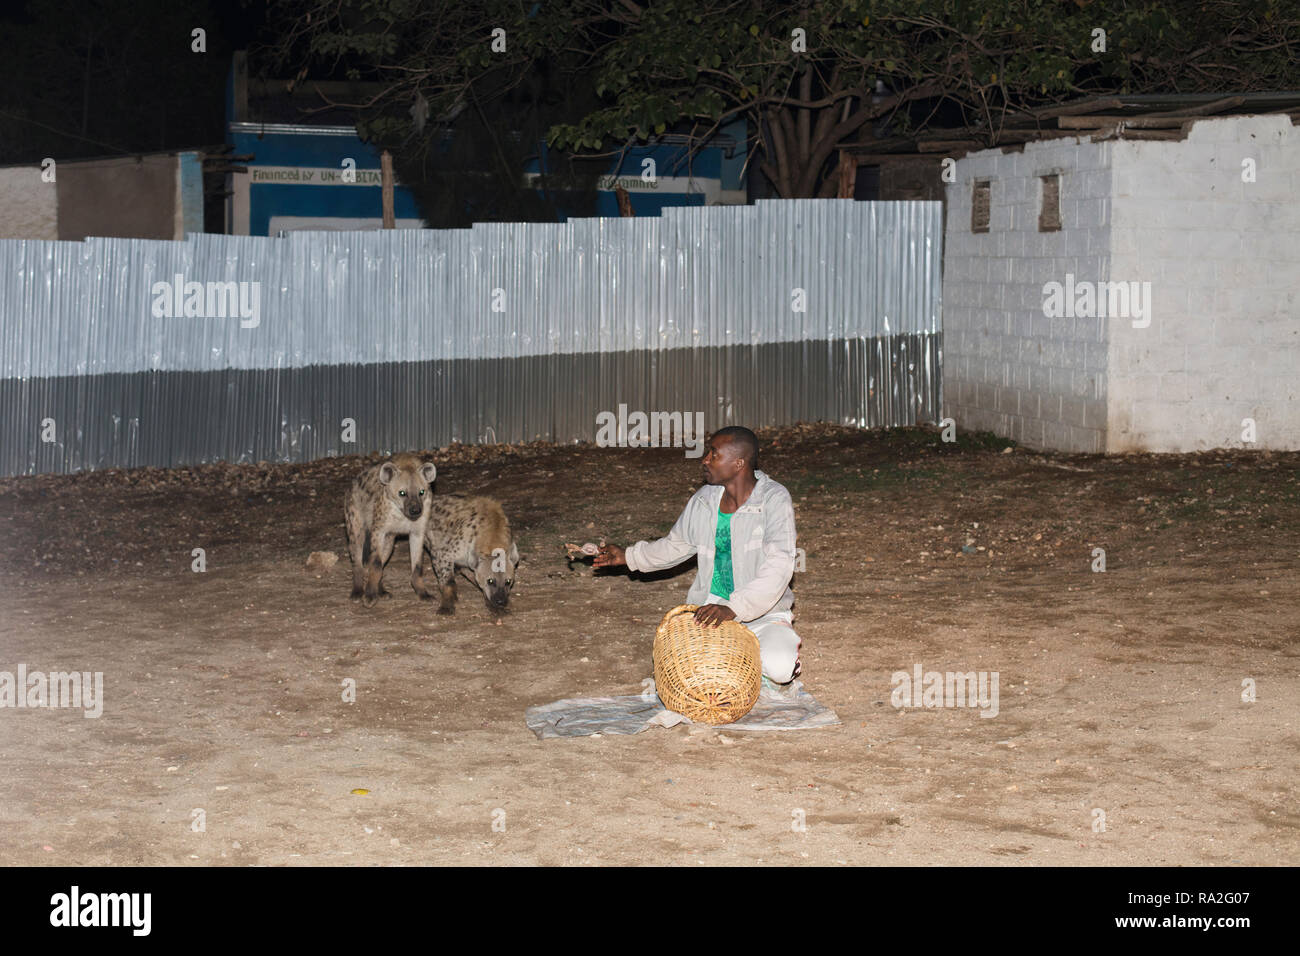 Harar / Ethiopia - May 2017: Wild hyenas being fed at night as a tourist attraction in Harar, Ethiopia. - Stock Image